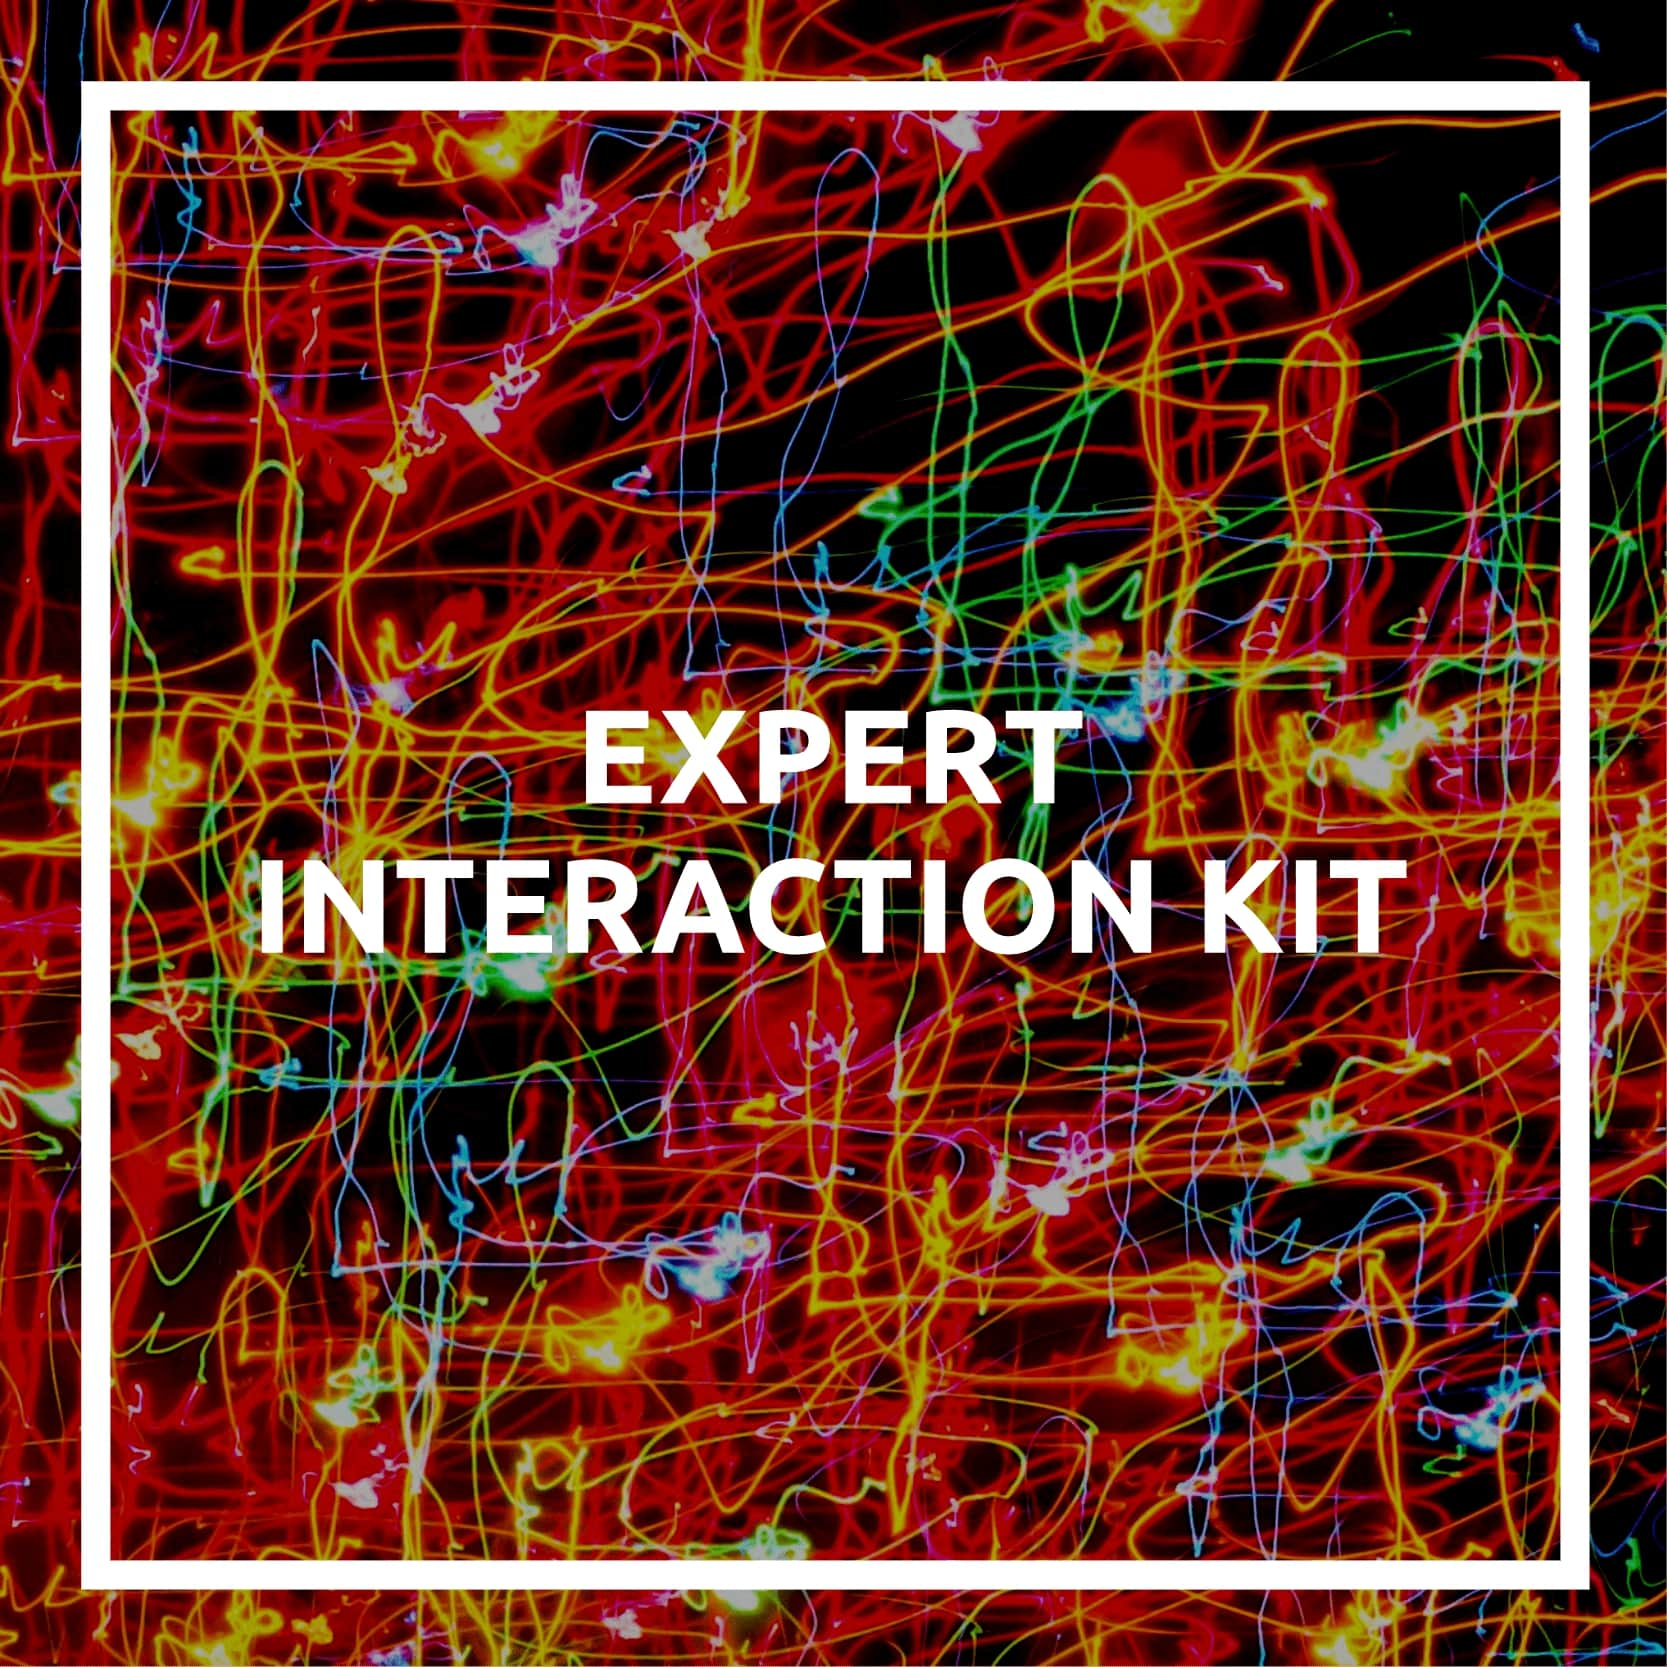 Expert Interaction Kit